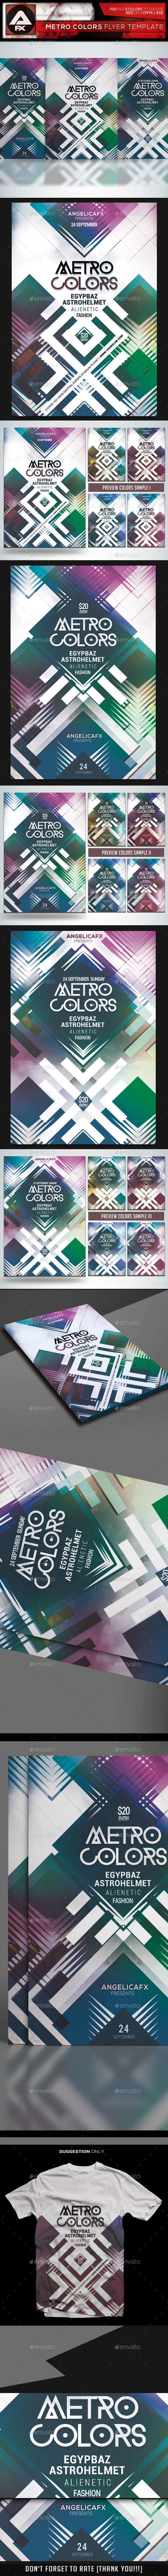 Metro Colors Flyer Template - Flyers Print Templates